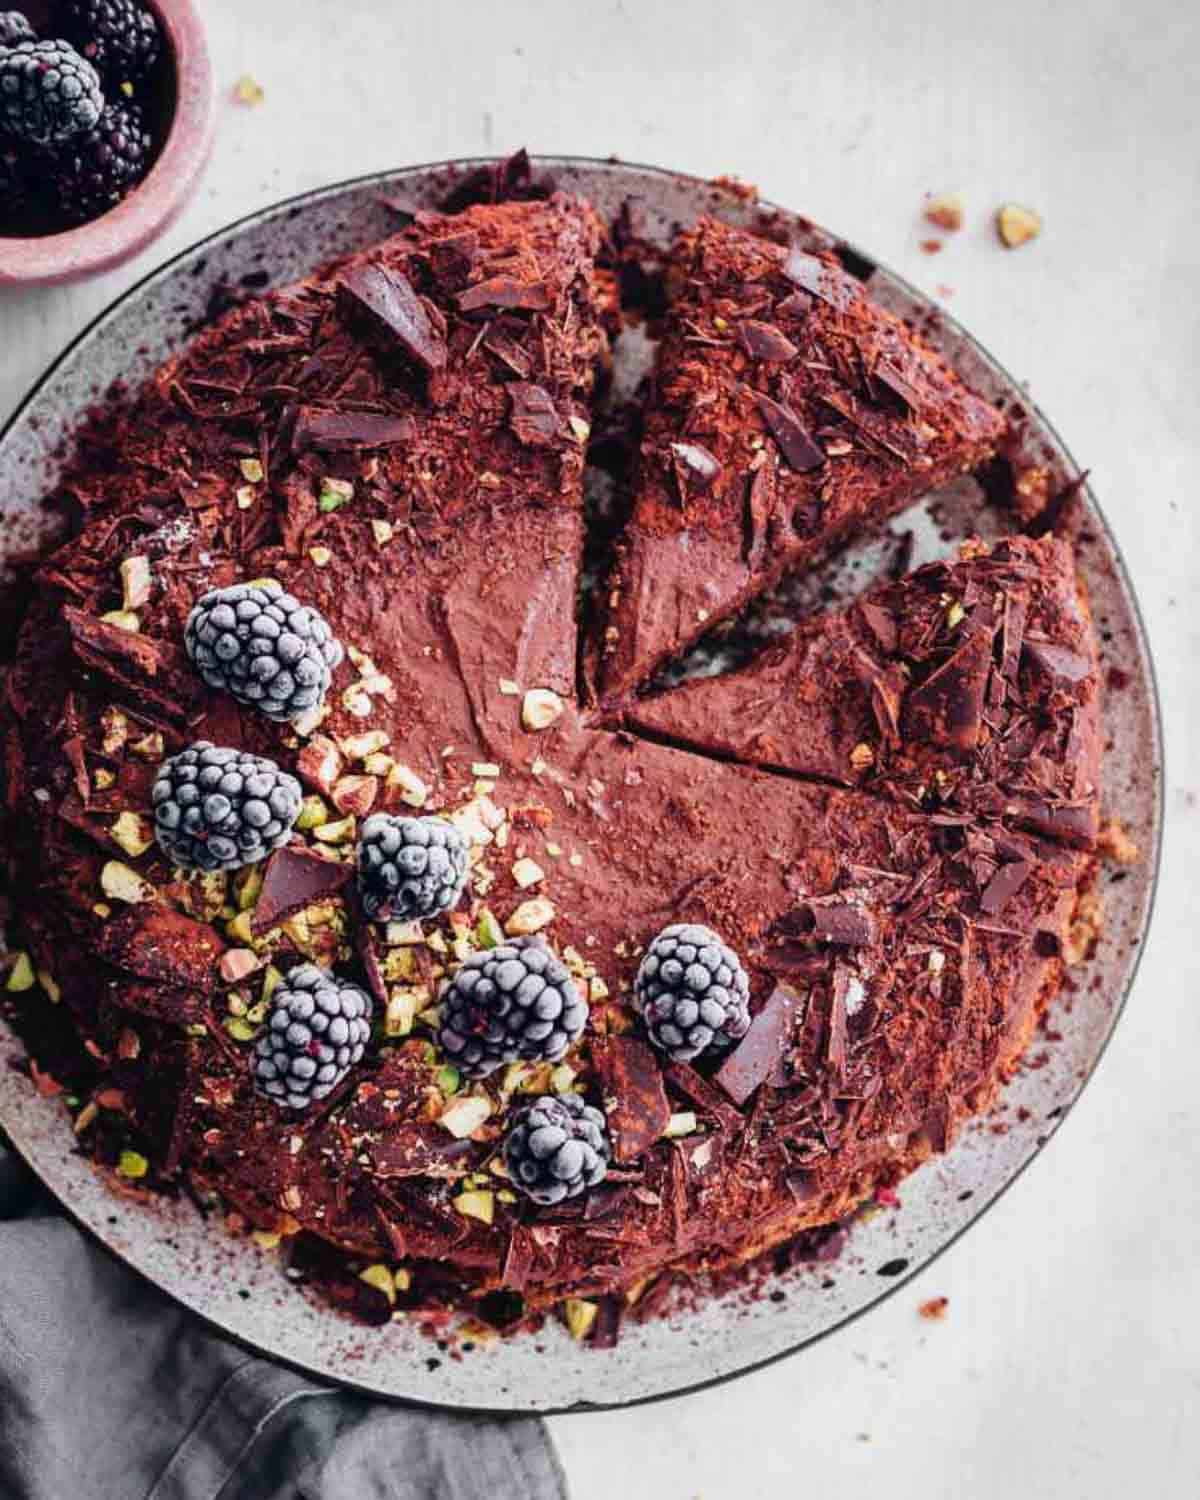 Mousse cake that is partially sliced topped with frozen blackberries and shredded chocolate.